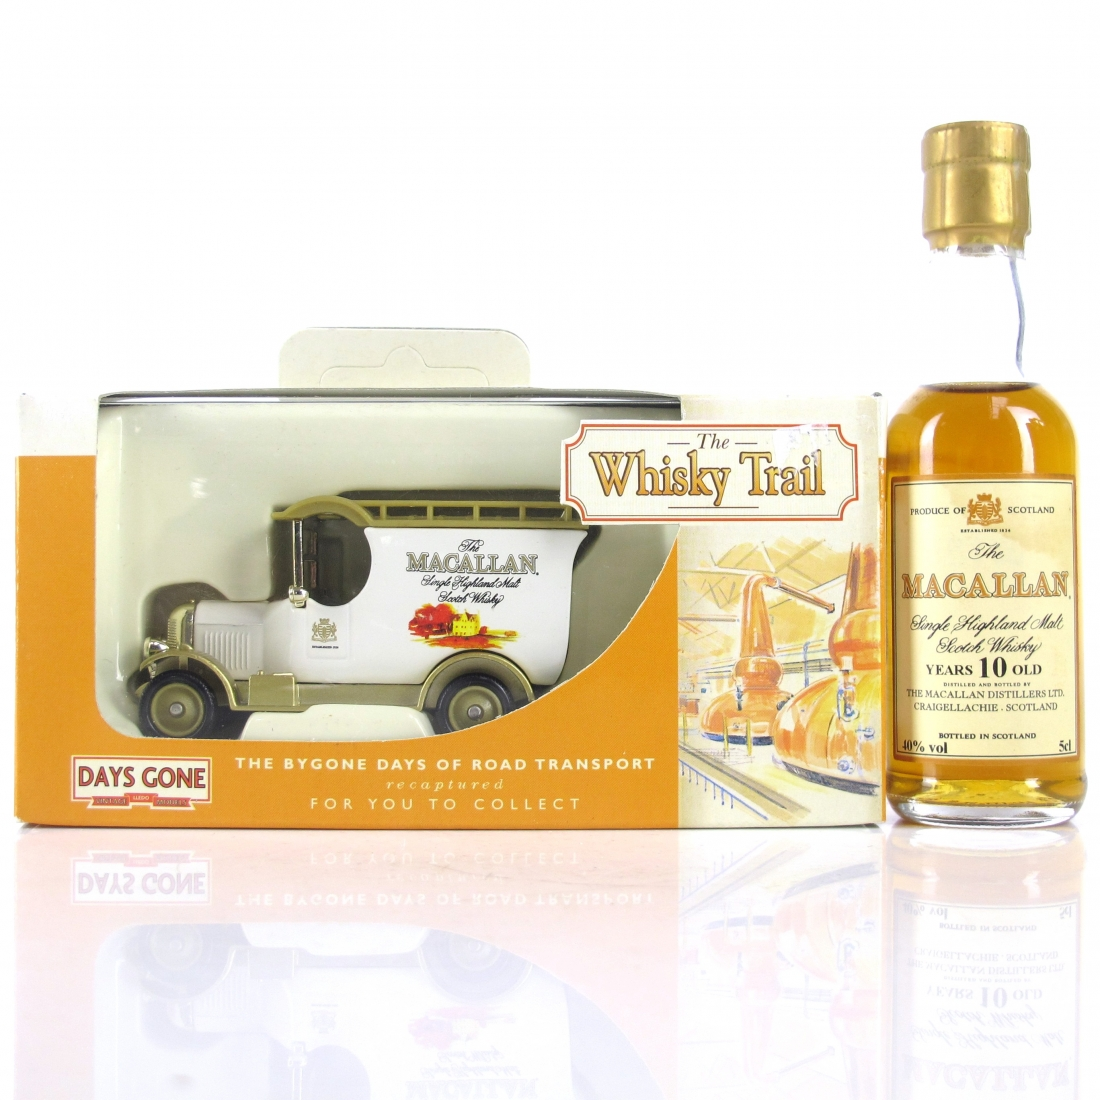 Macallan 10 Year Old Miniature 5cl 1990s / includes Whisky Trail Van